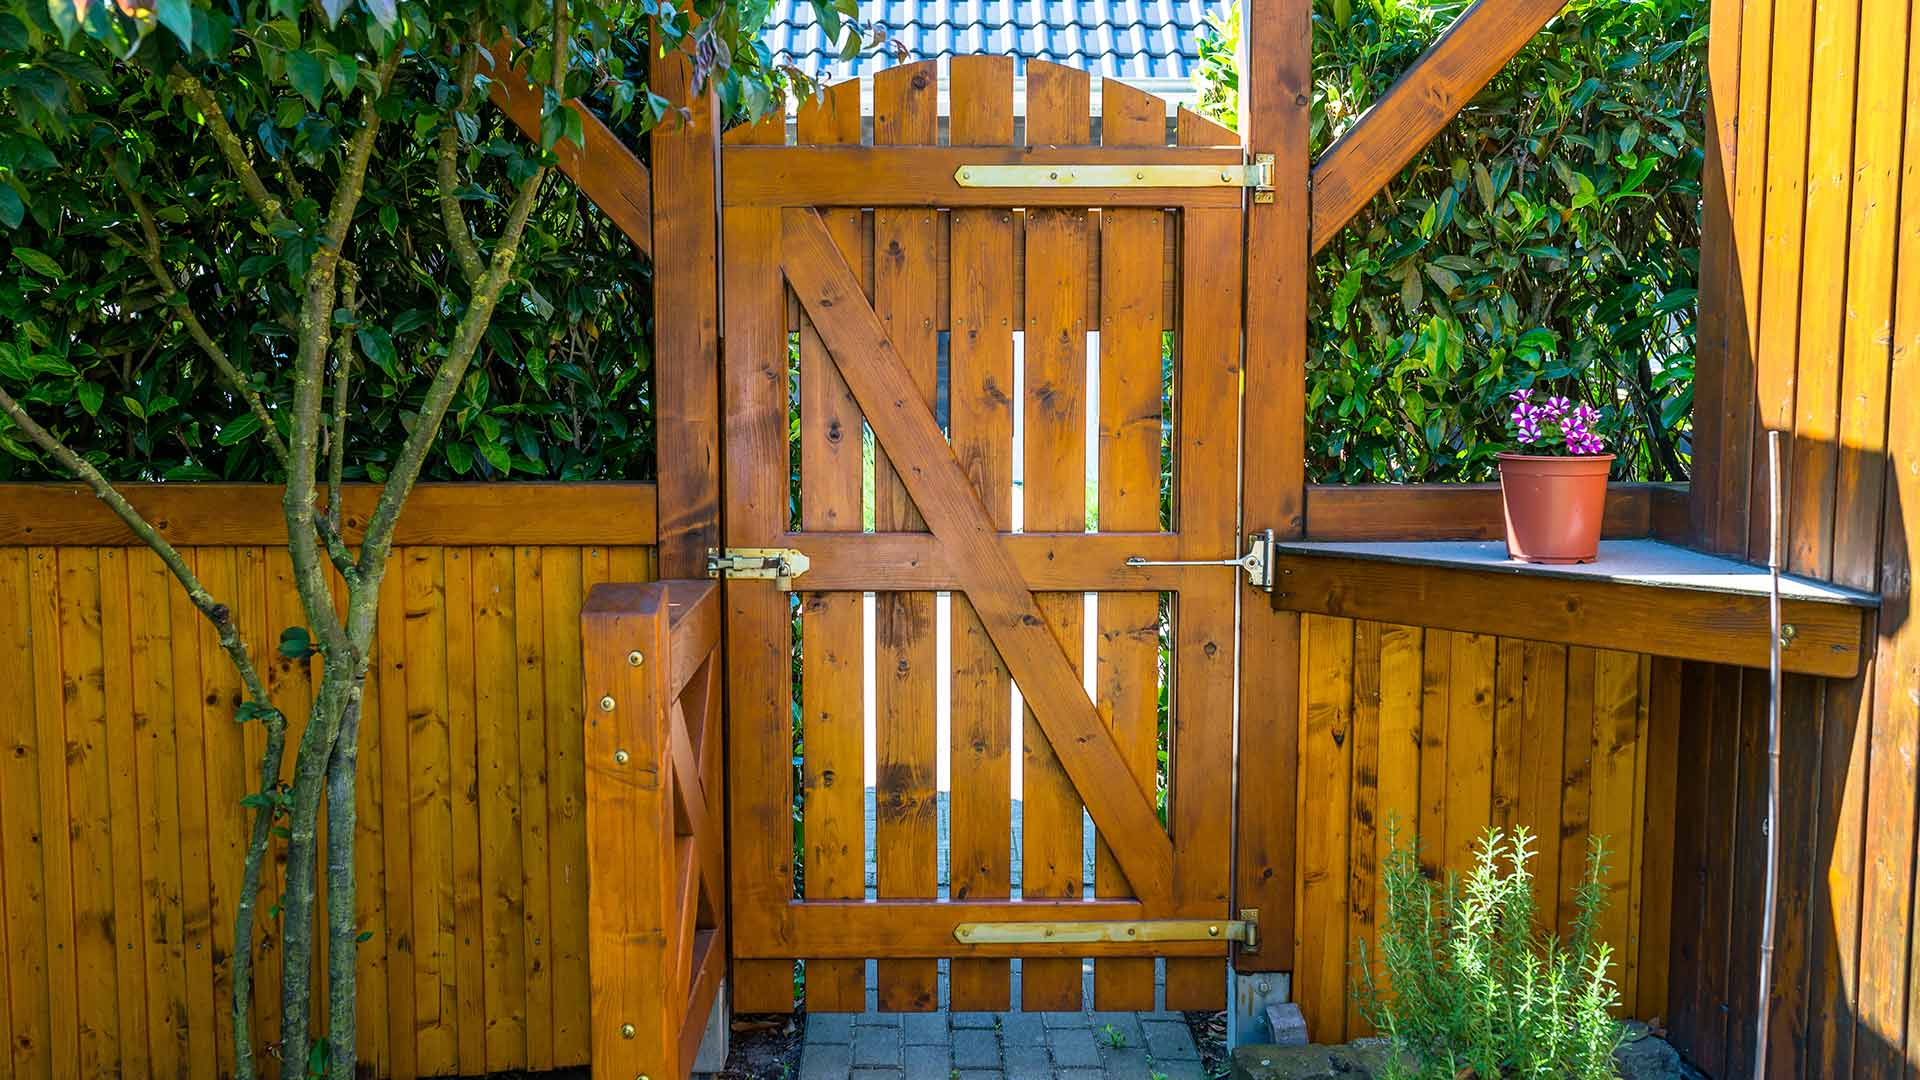 Tall wooden fence gate leading to a beautifully landscaped patio